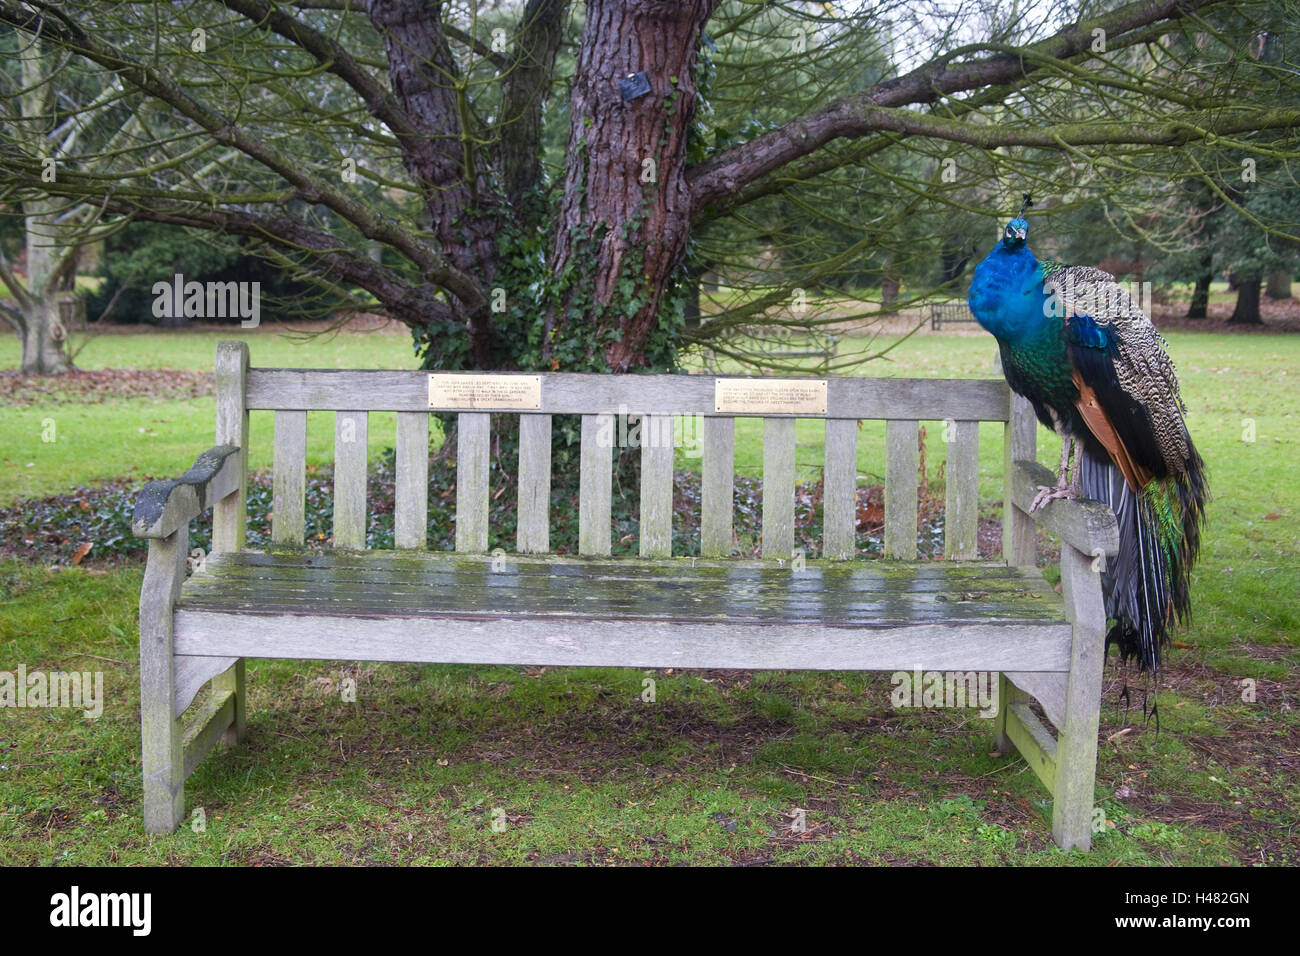 wooden bank, peacock, sit, animal, gallinaceous birds, feathers, brightly, nature, outside, park, little man, Phasianidae, - Stock Image